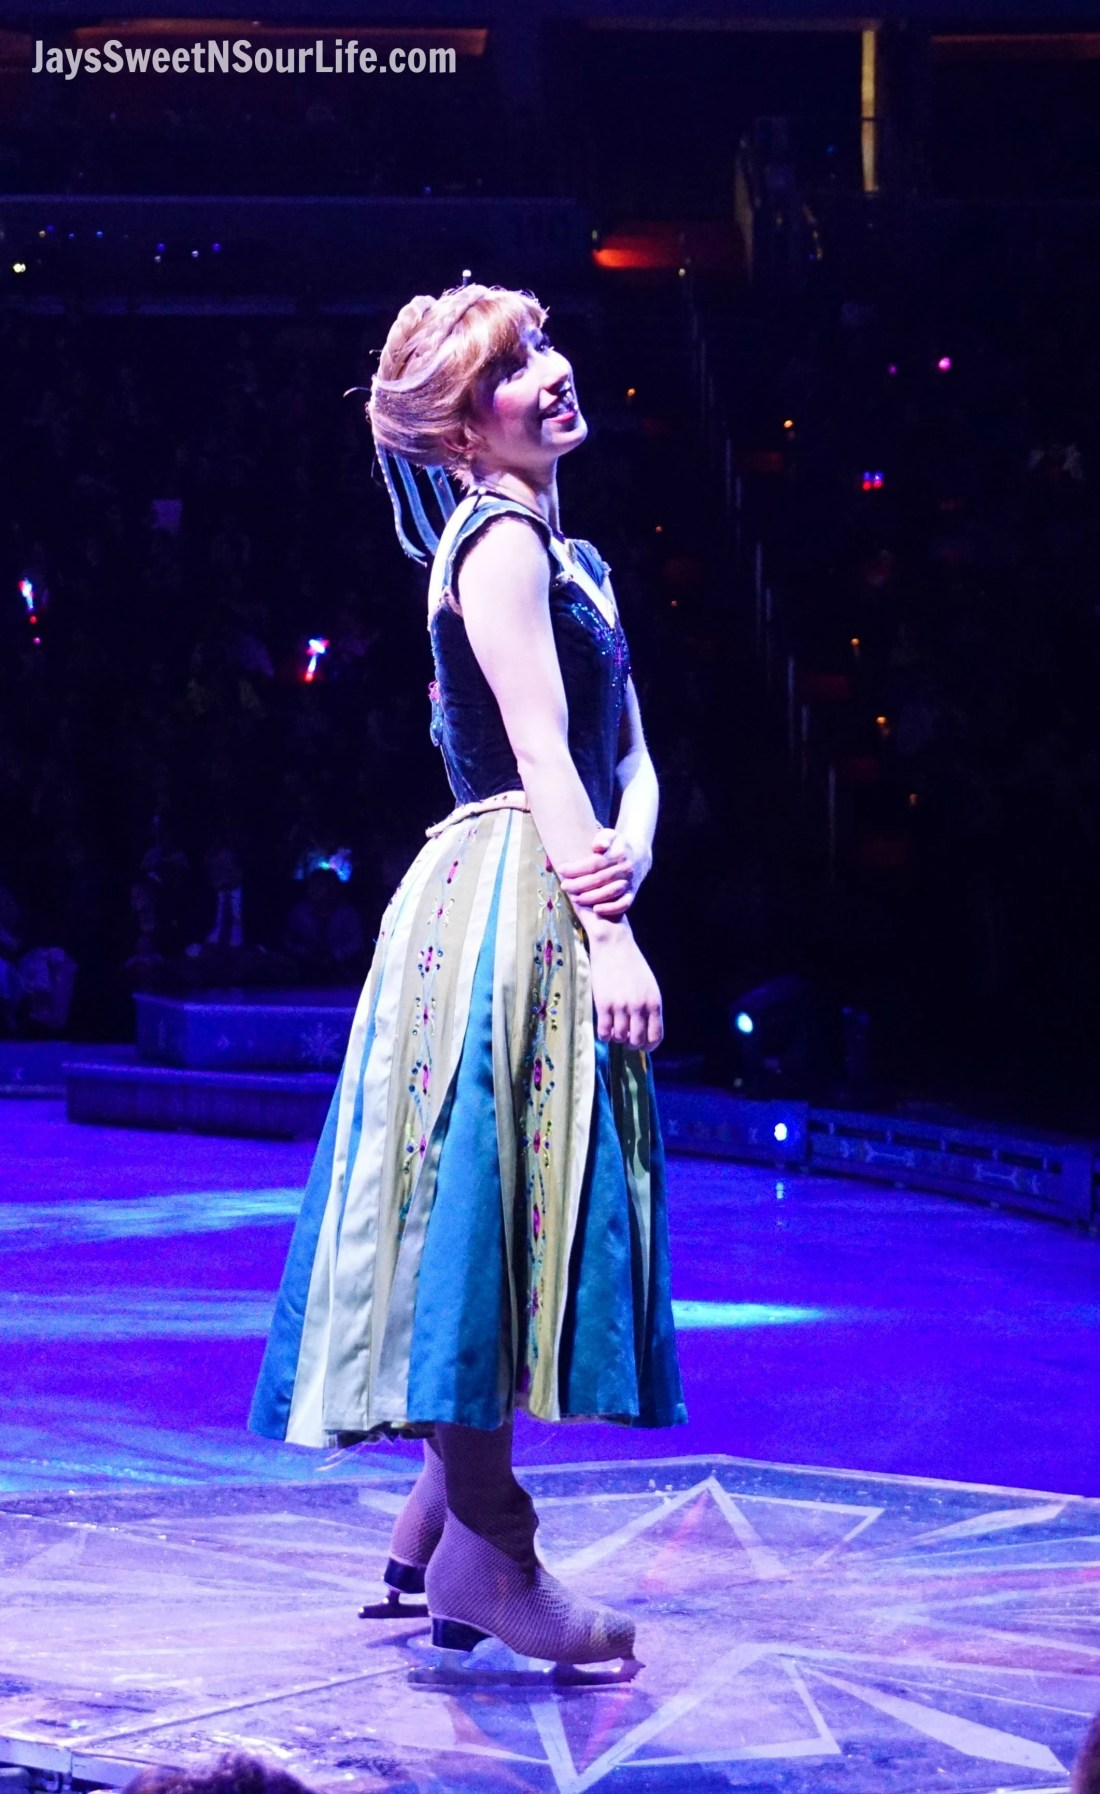 Disney On Ice Presents Frozen coming to a town near you. Ana stands on a sedistalto show off her dress and beautiful hair.